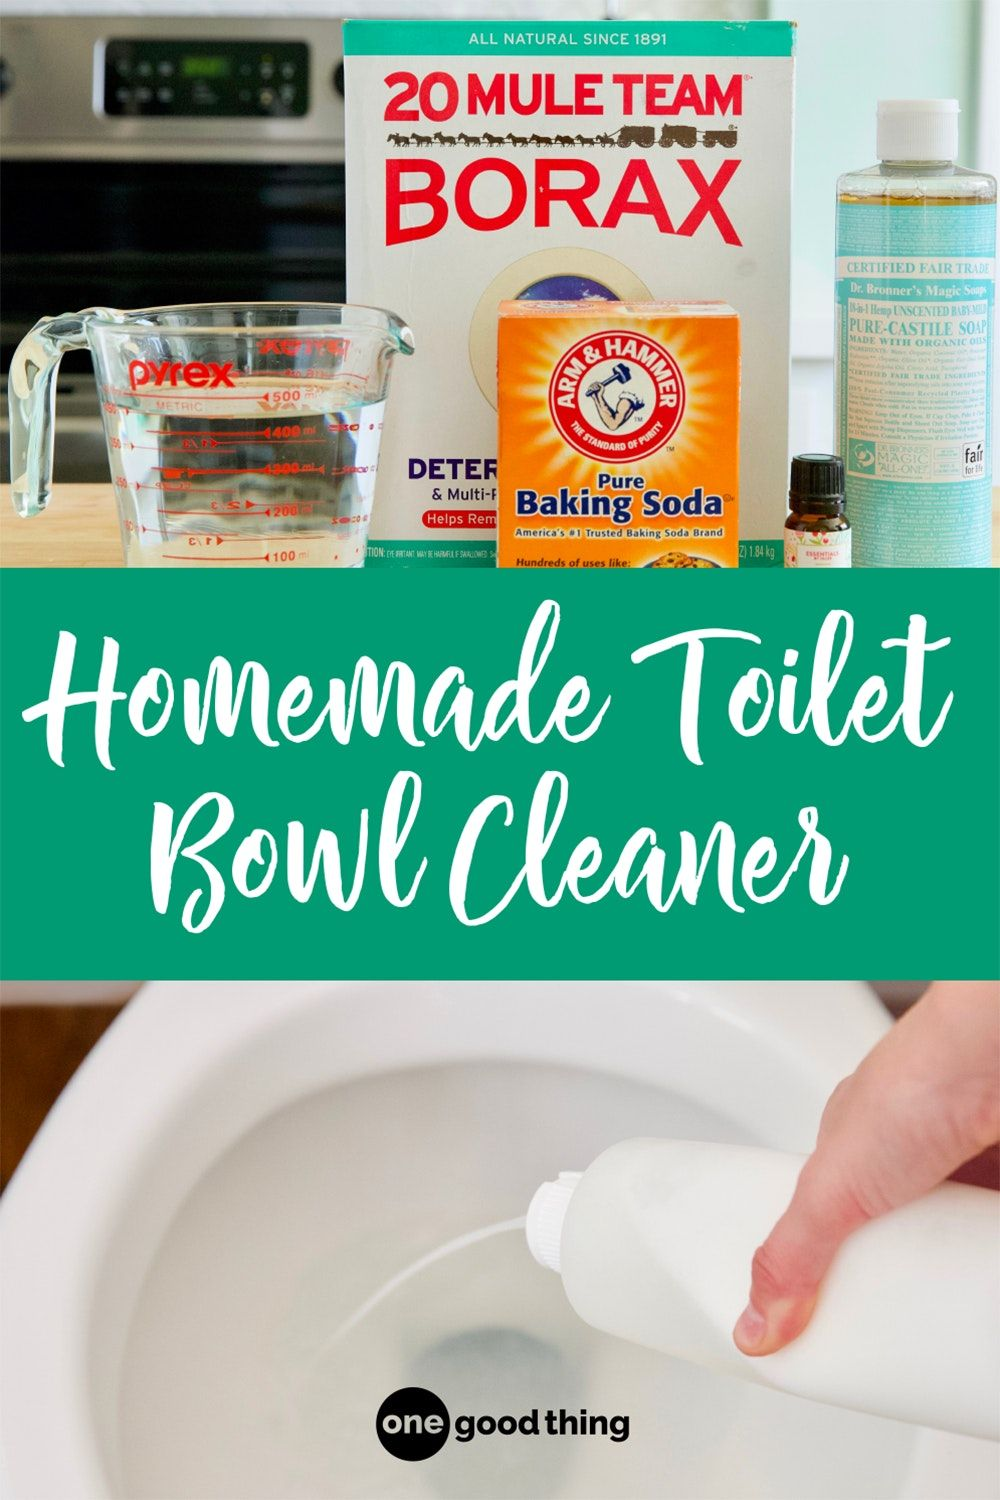 How To Make A Homemade Toilet Bowl Cleaner In 2020 With Images Homemade Toilet Bowl Cleaner